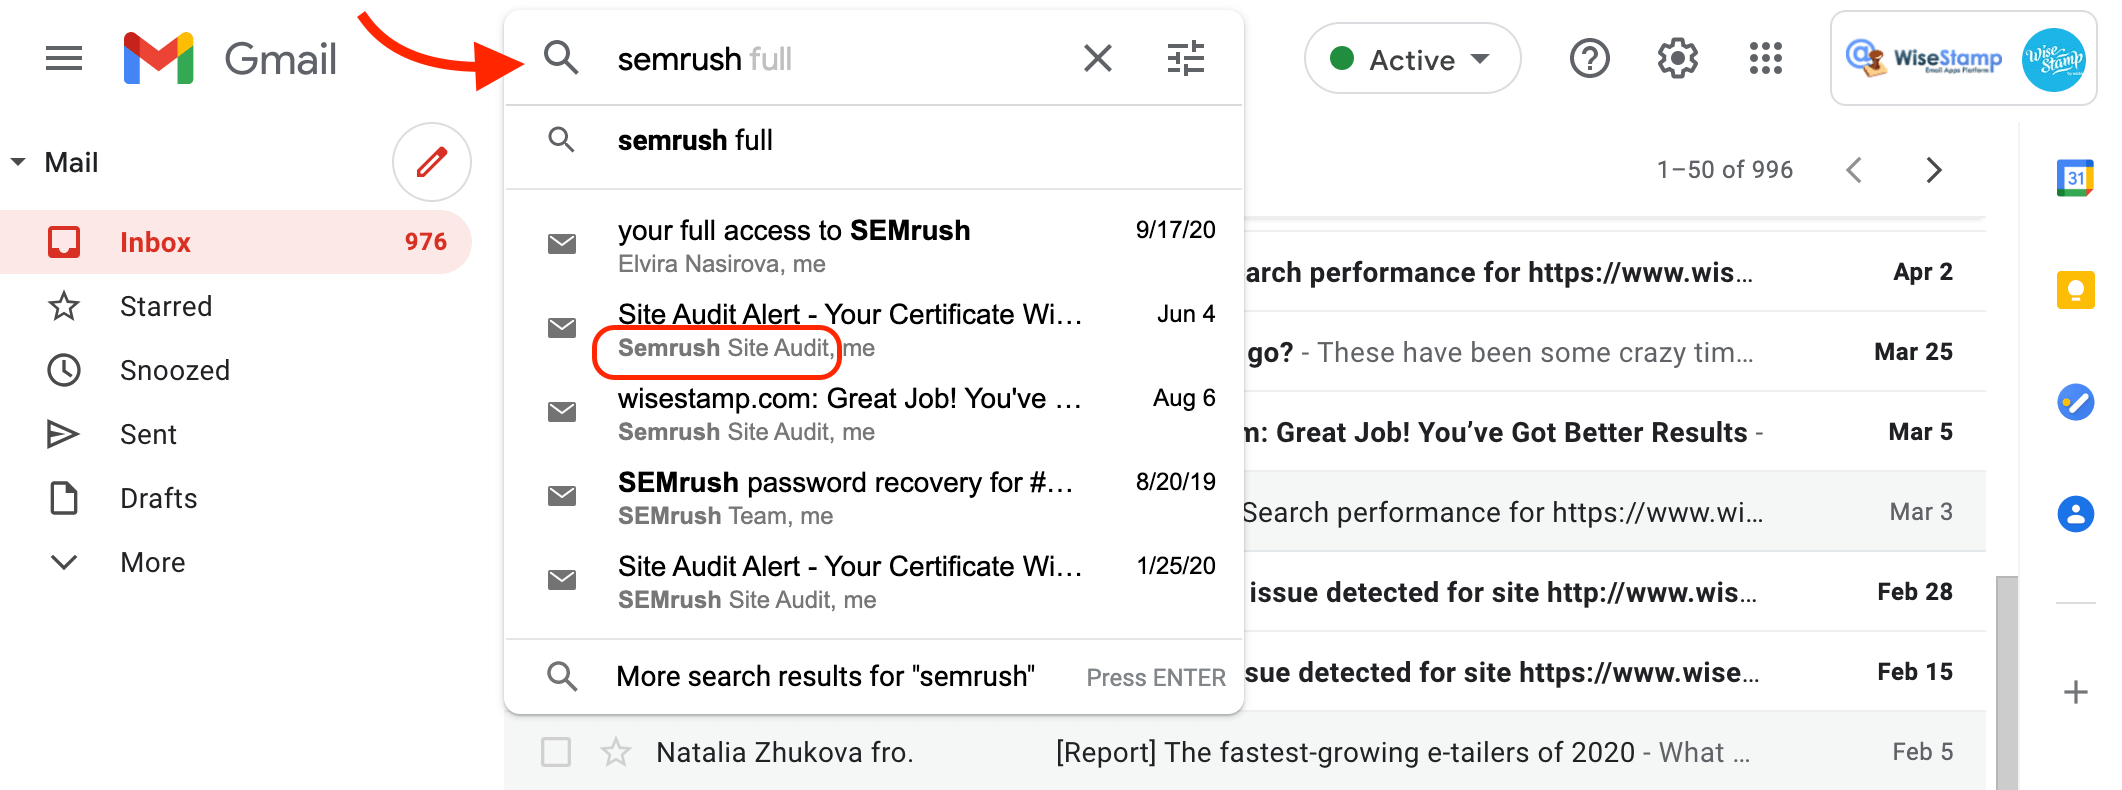 sort gmail by name